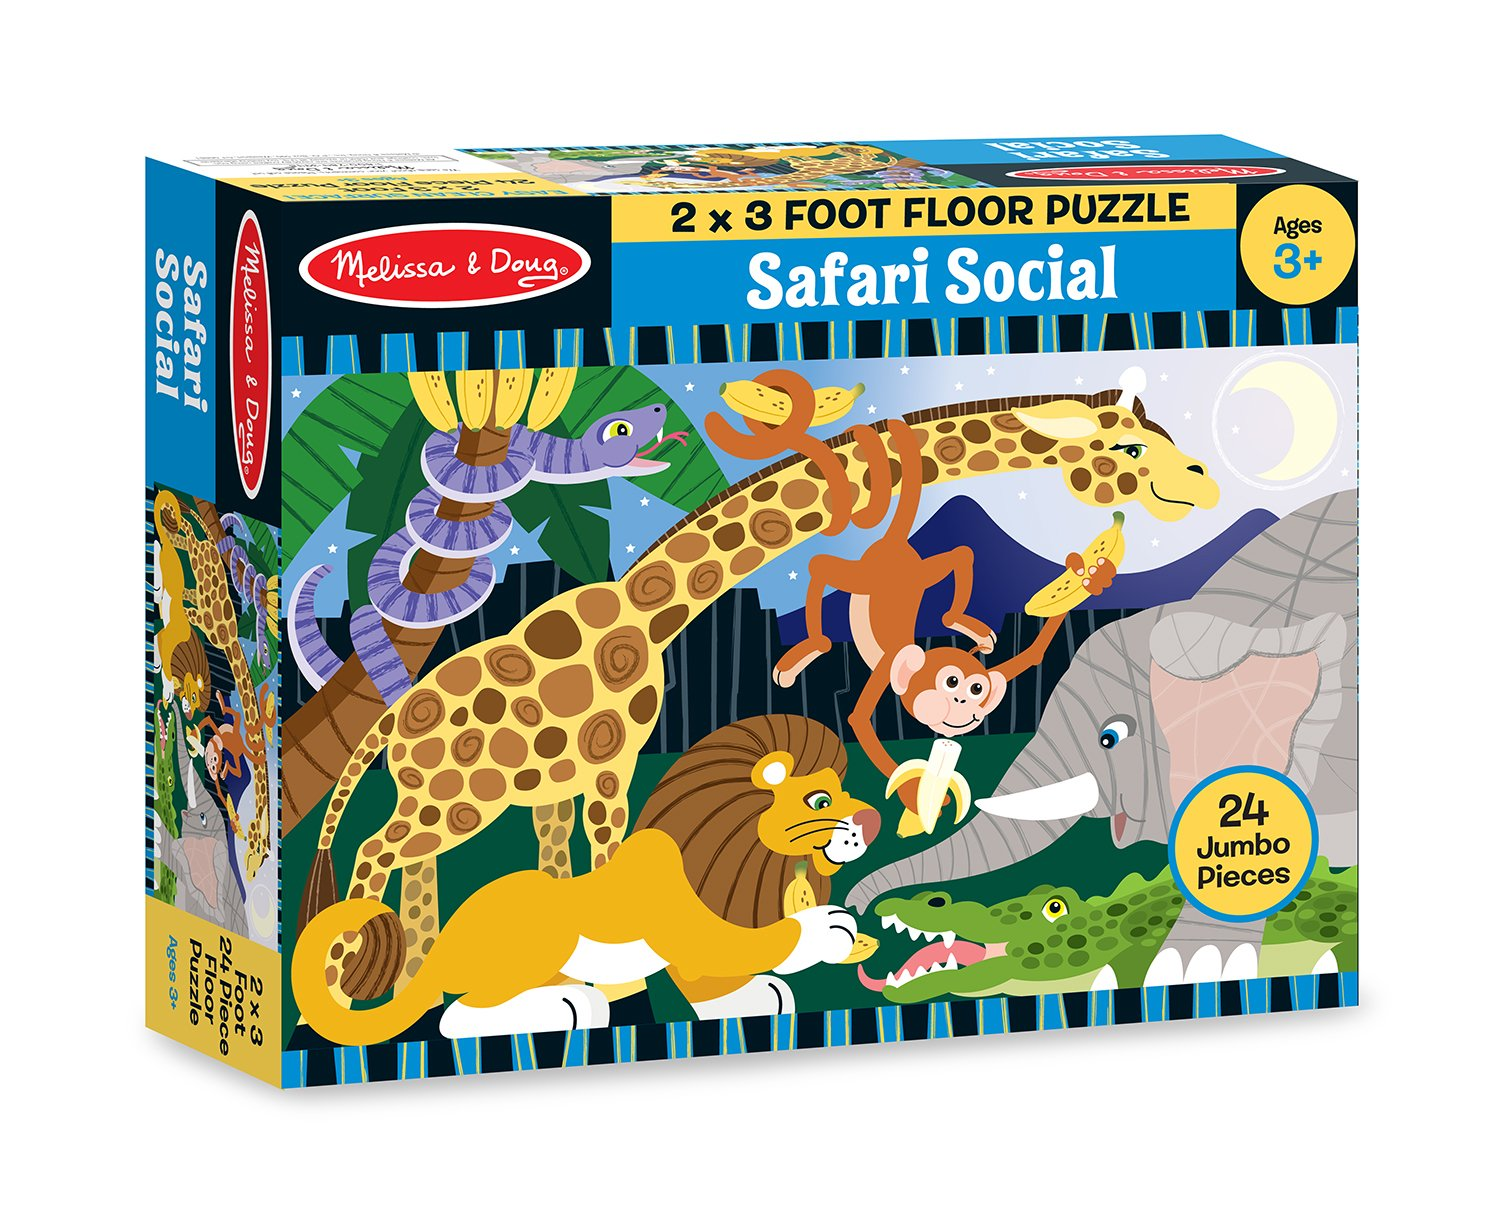 puzzle puzzles petit collage products enchanted floor nest little woodland earth